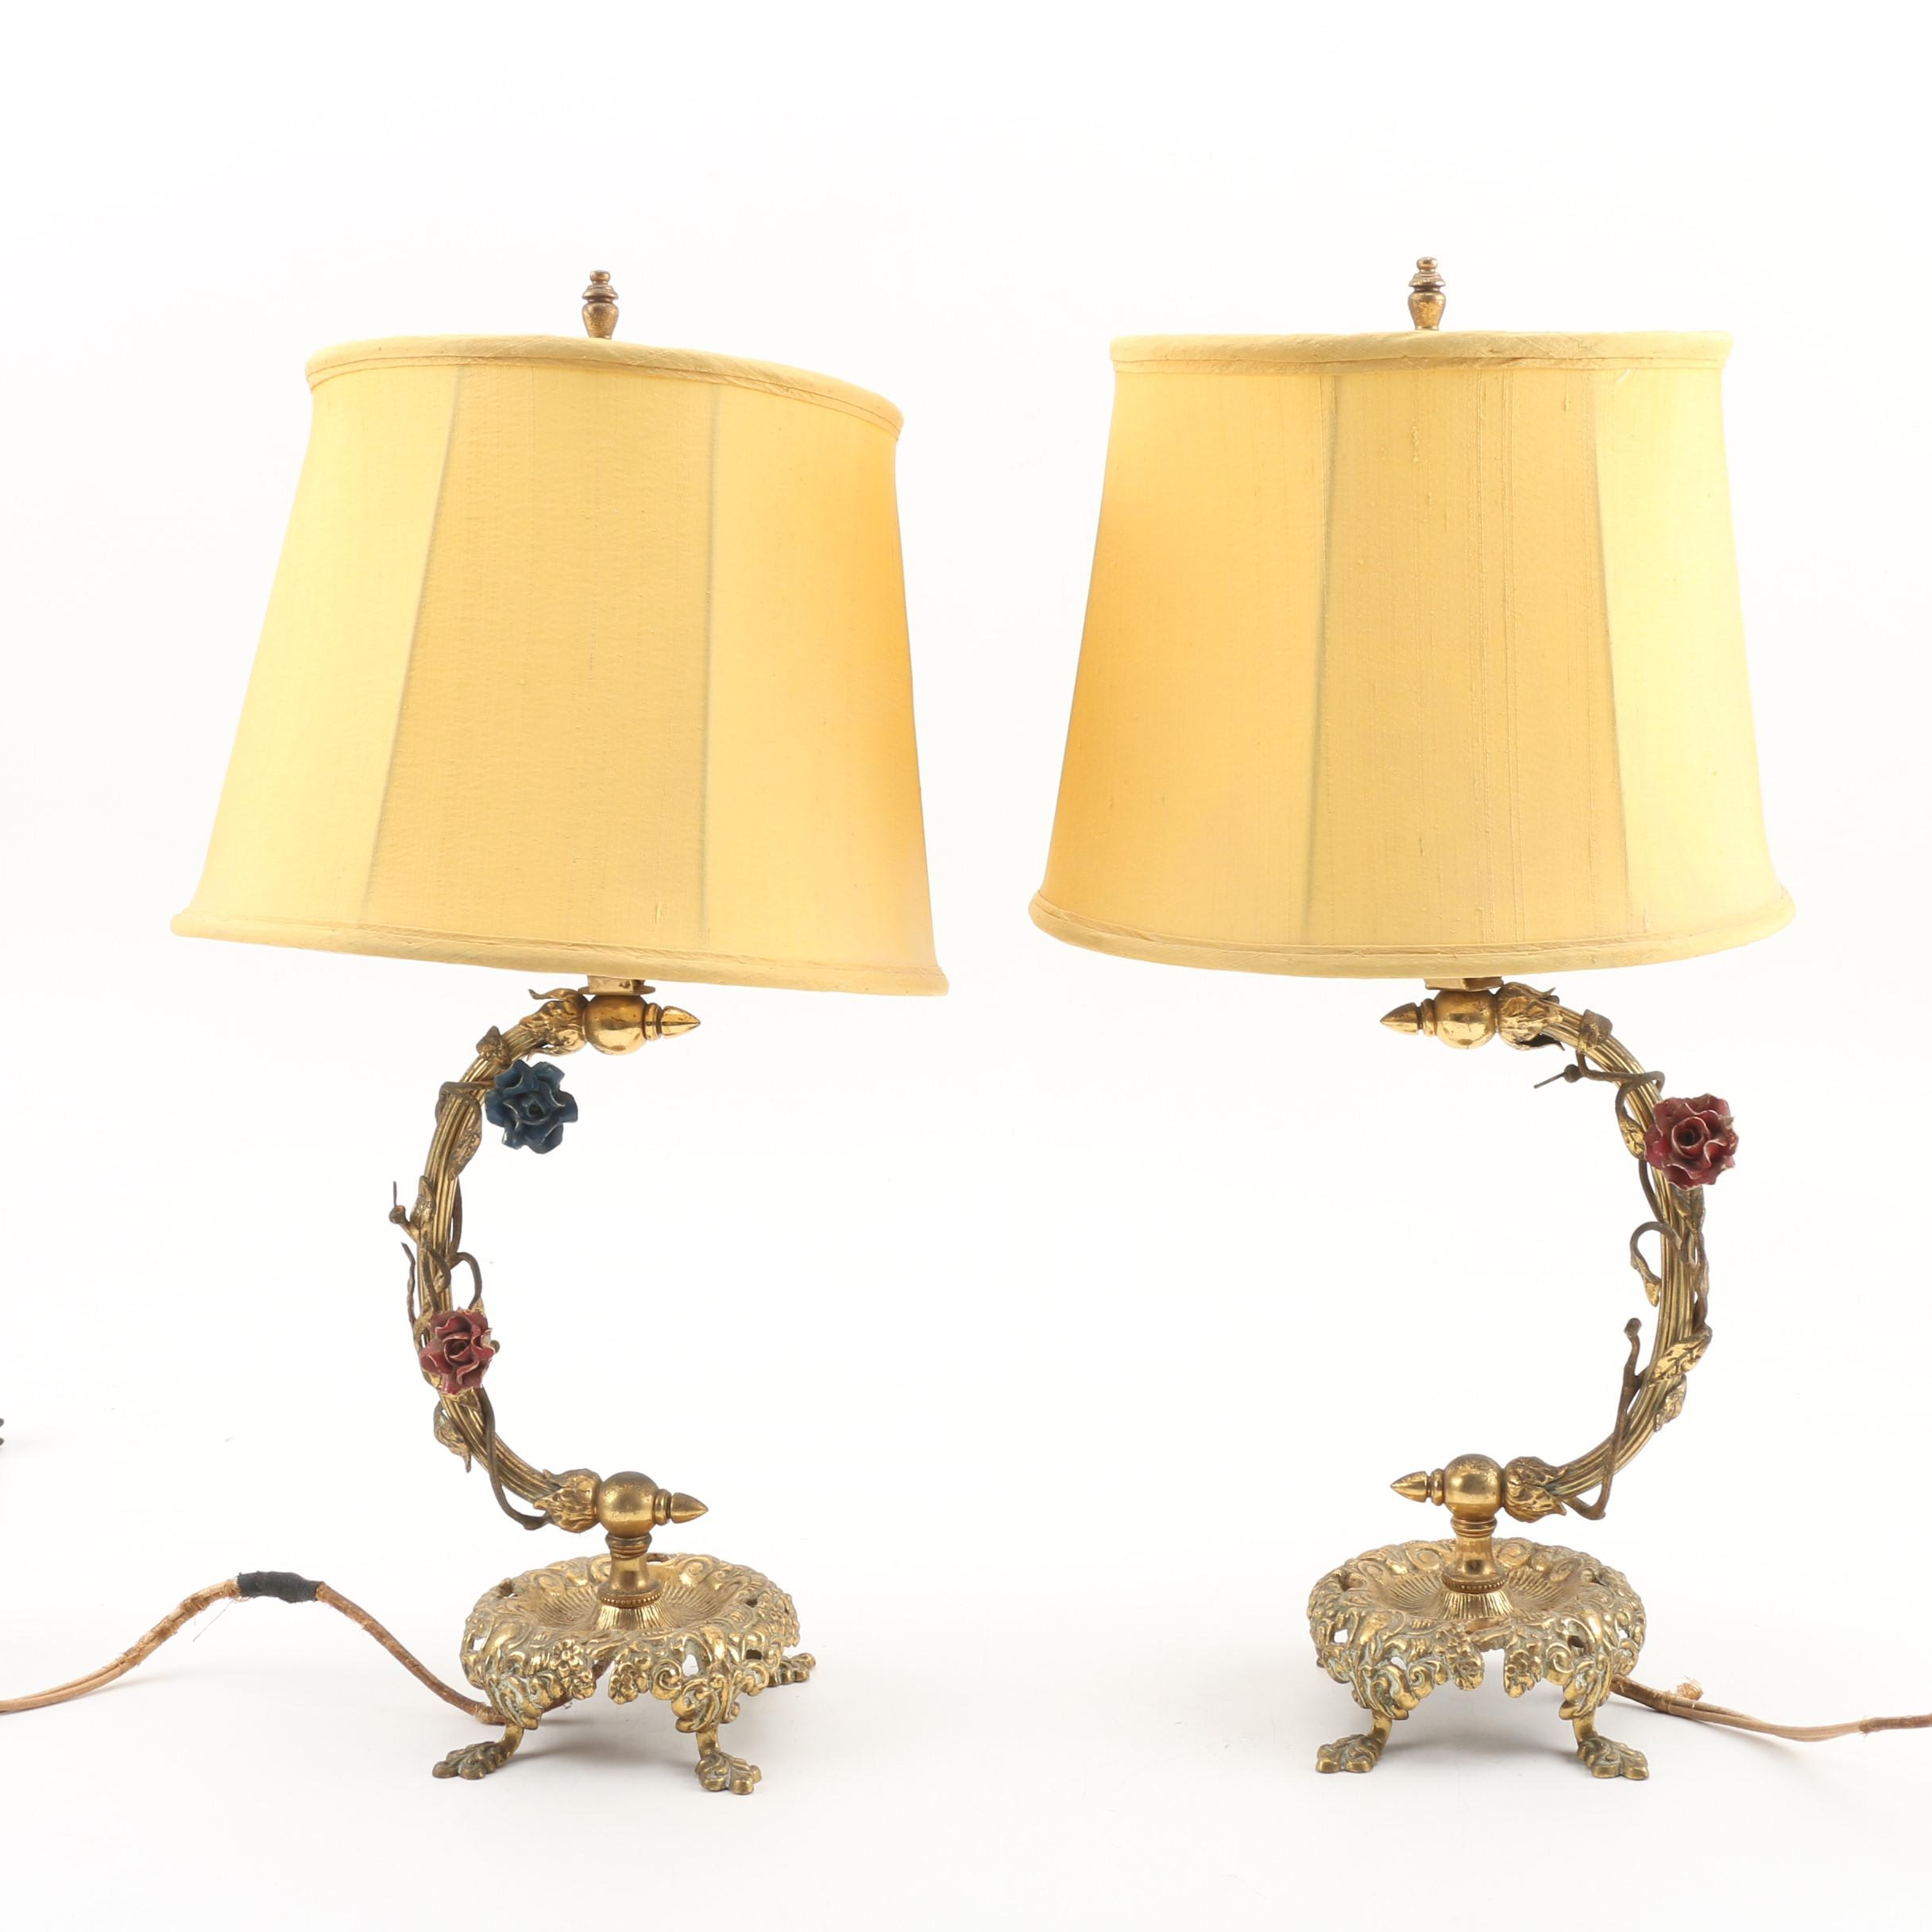 Matching Footed Brass Table Lamps with Shades